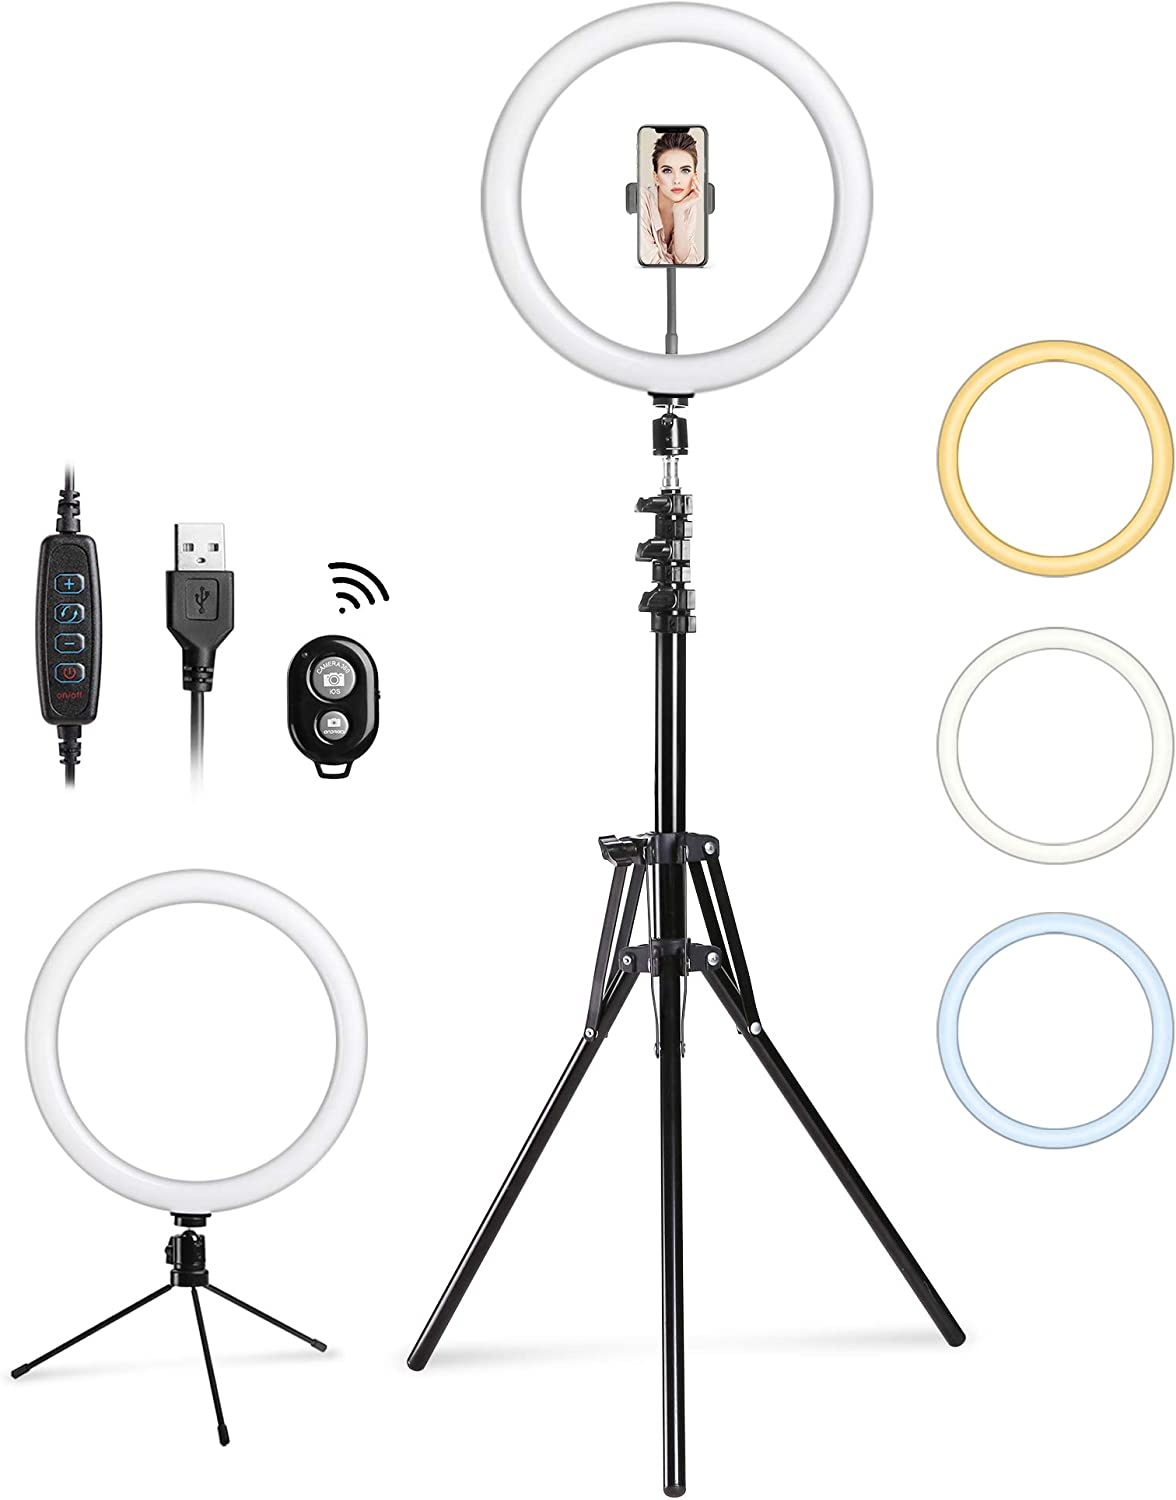 Entil 12'' Selfie Ring Light Mini LED Camera Lighting with Tripod and Cell Phone Stand Holder for YouTube Video Shooting/Photography Livestream Beauty Makeup, Compatible with iOS Android